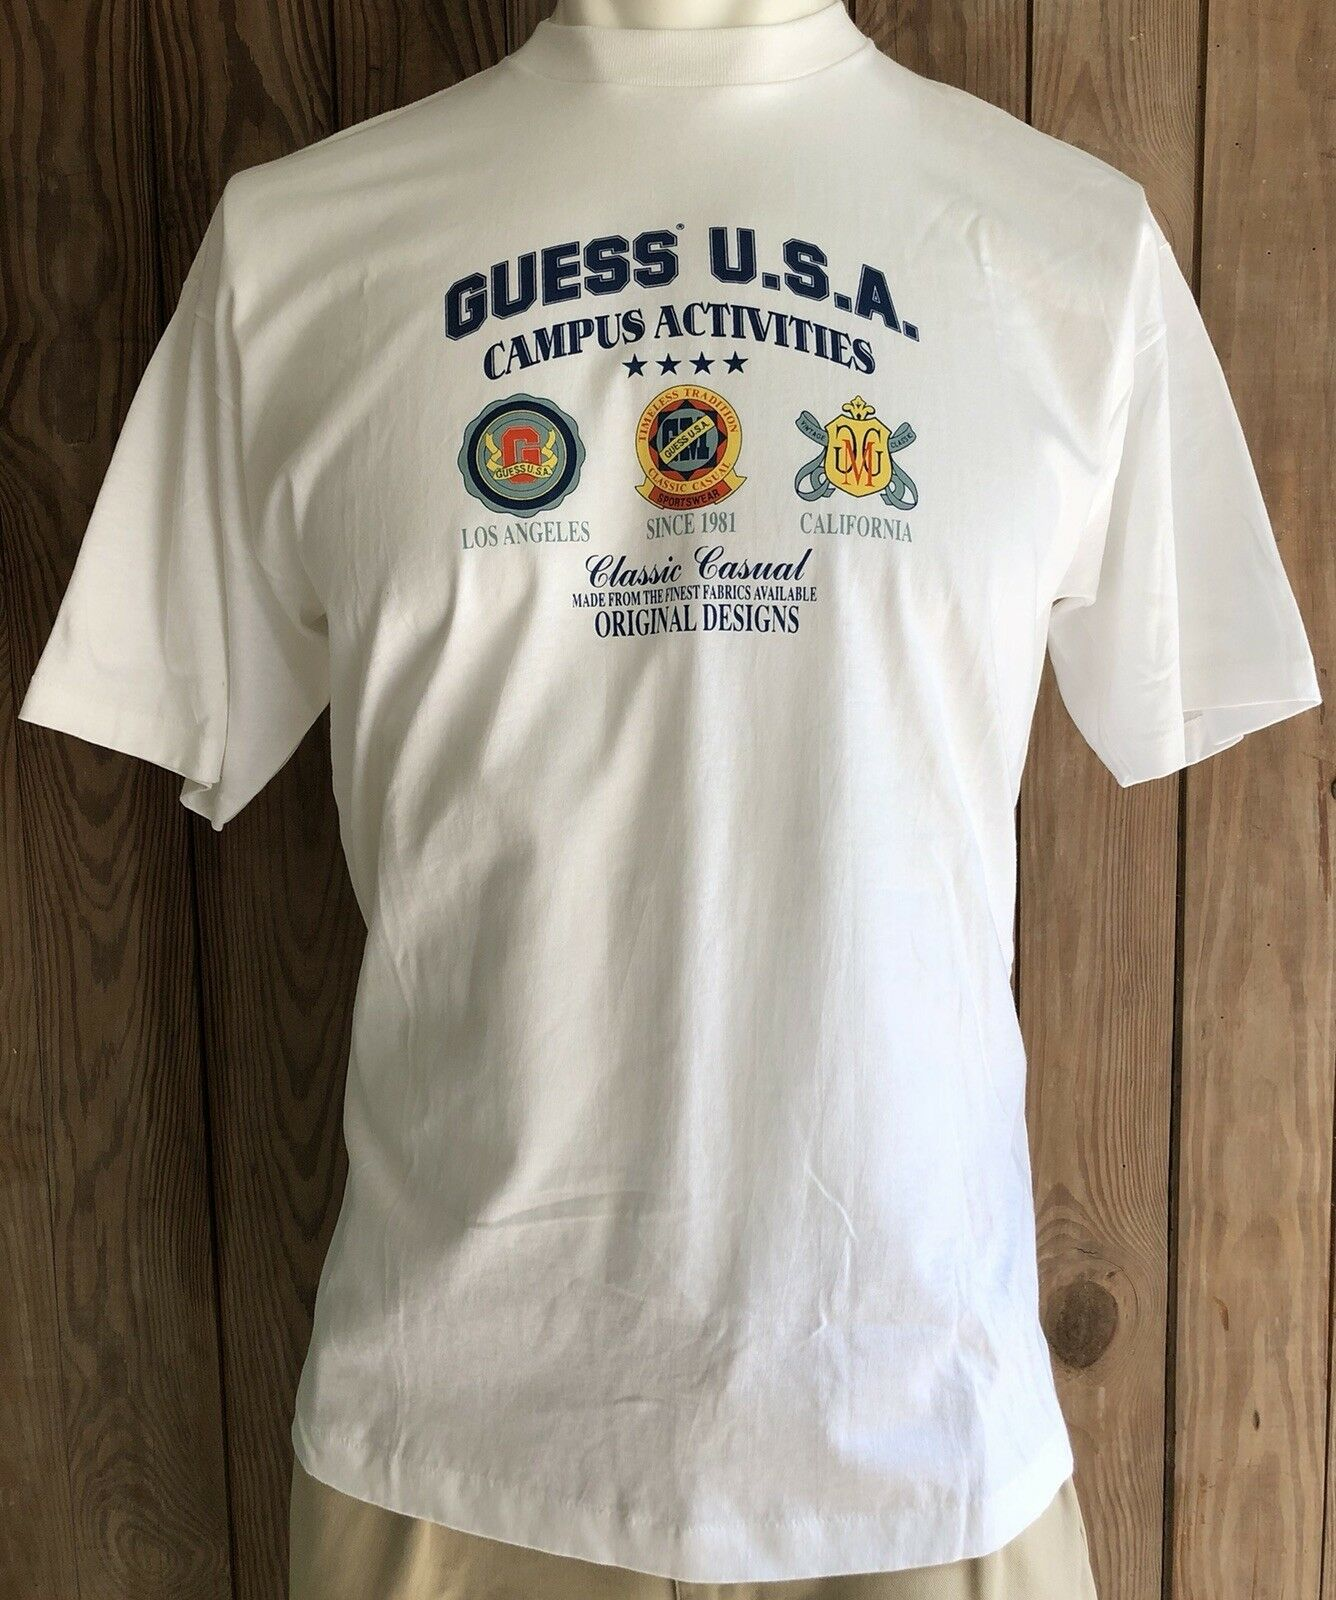 Guess Jeans Men's Large Tshirt Vintage 90's USA Spell Out Campus Activities